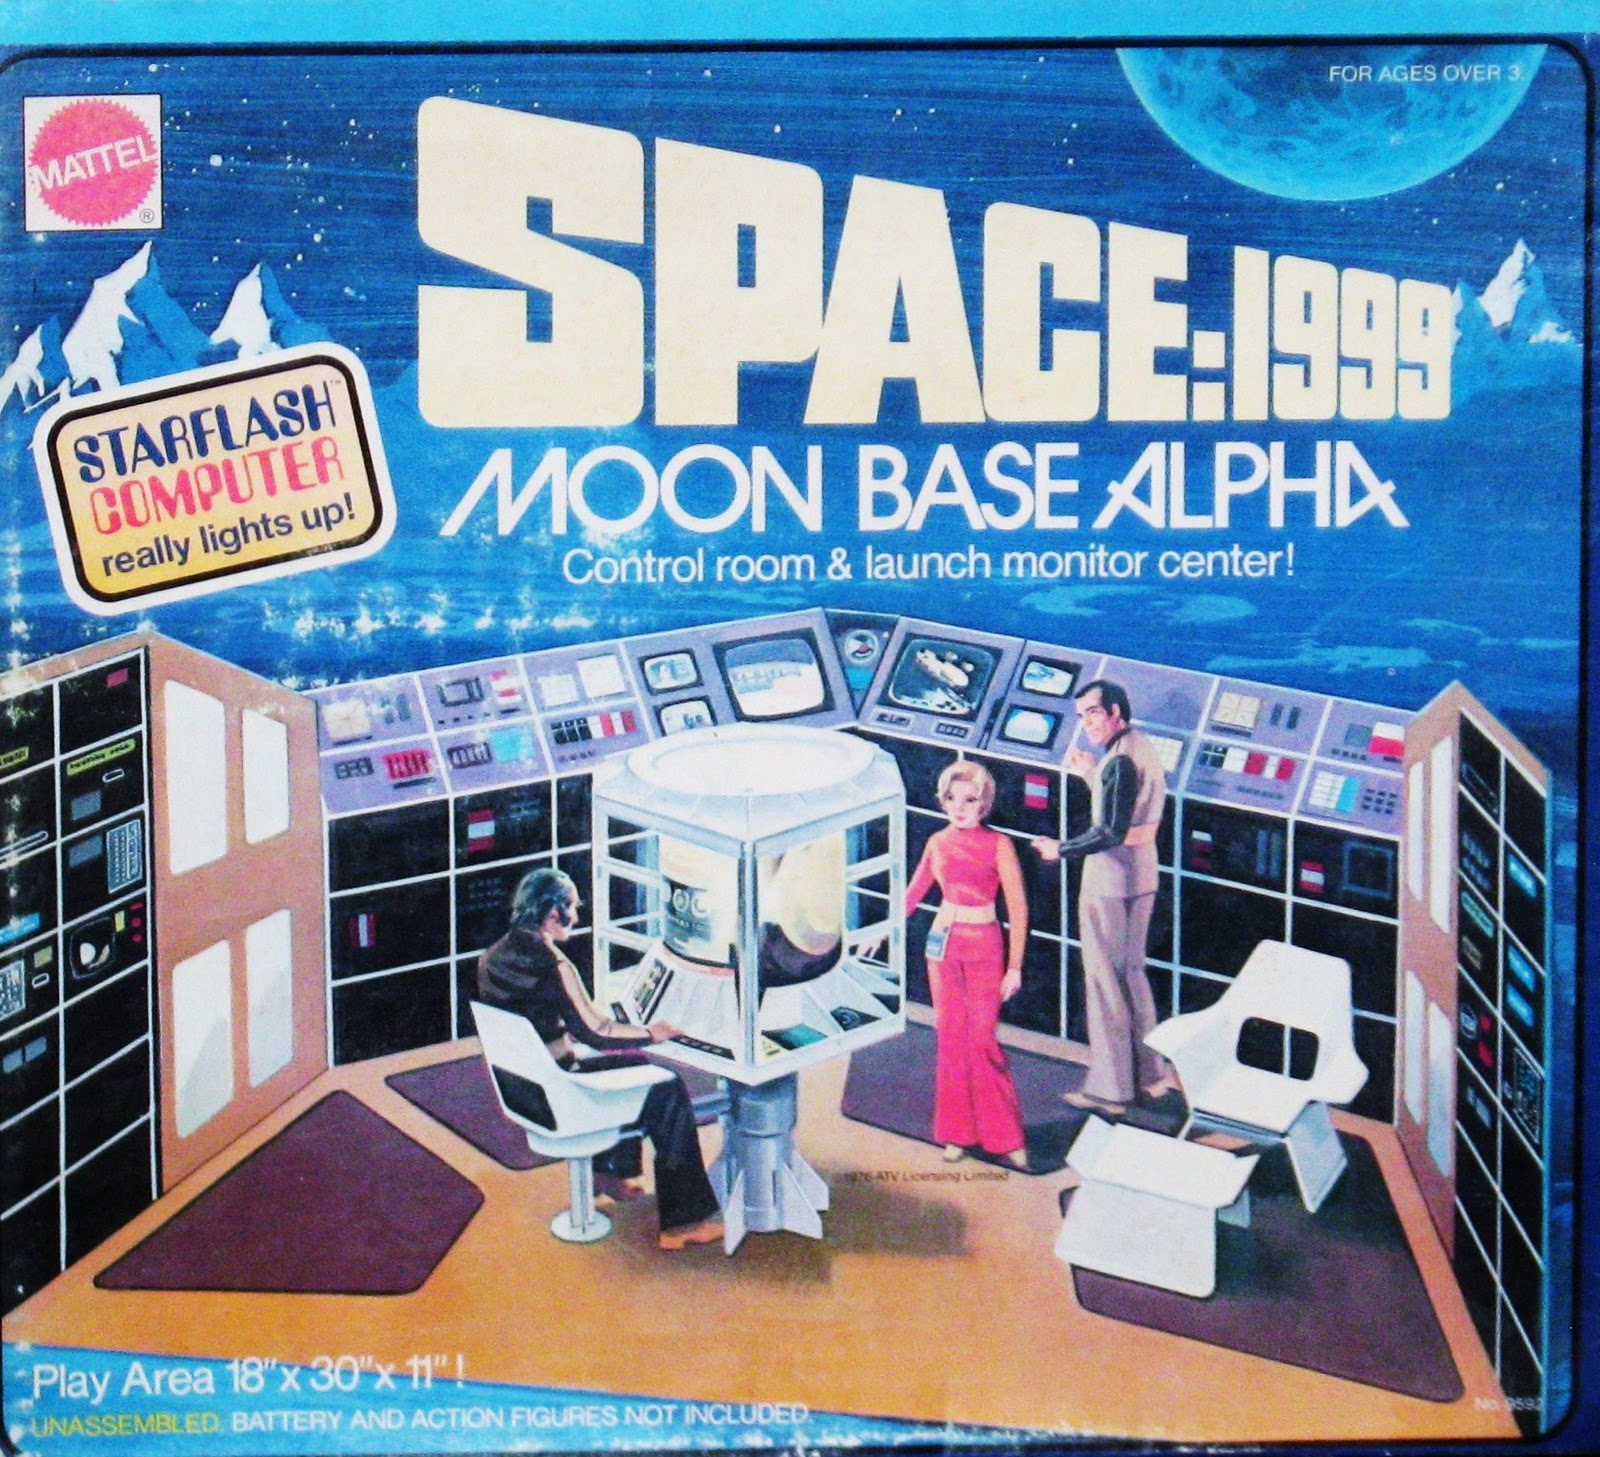 moonbase alpha books - photo #37